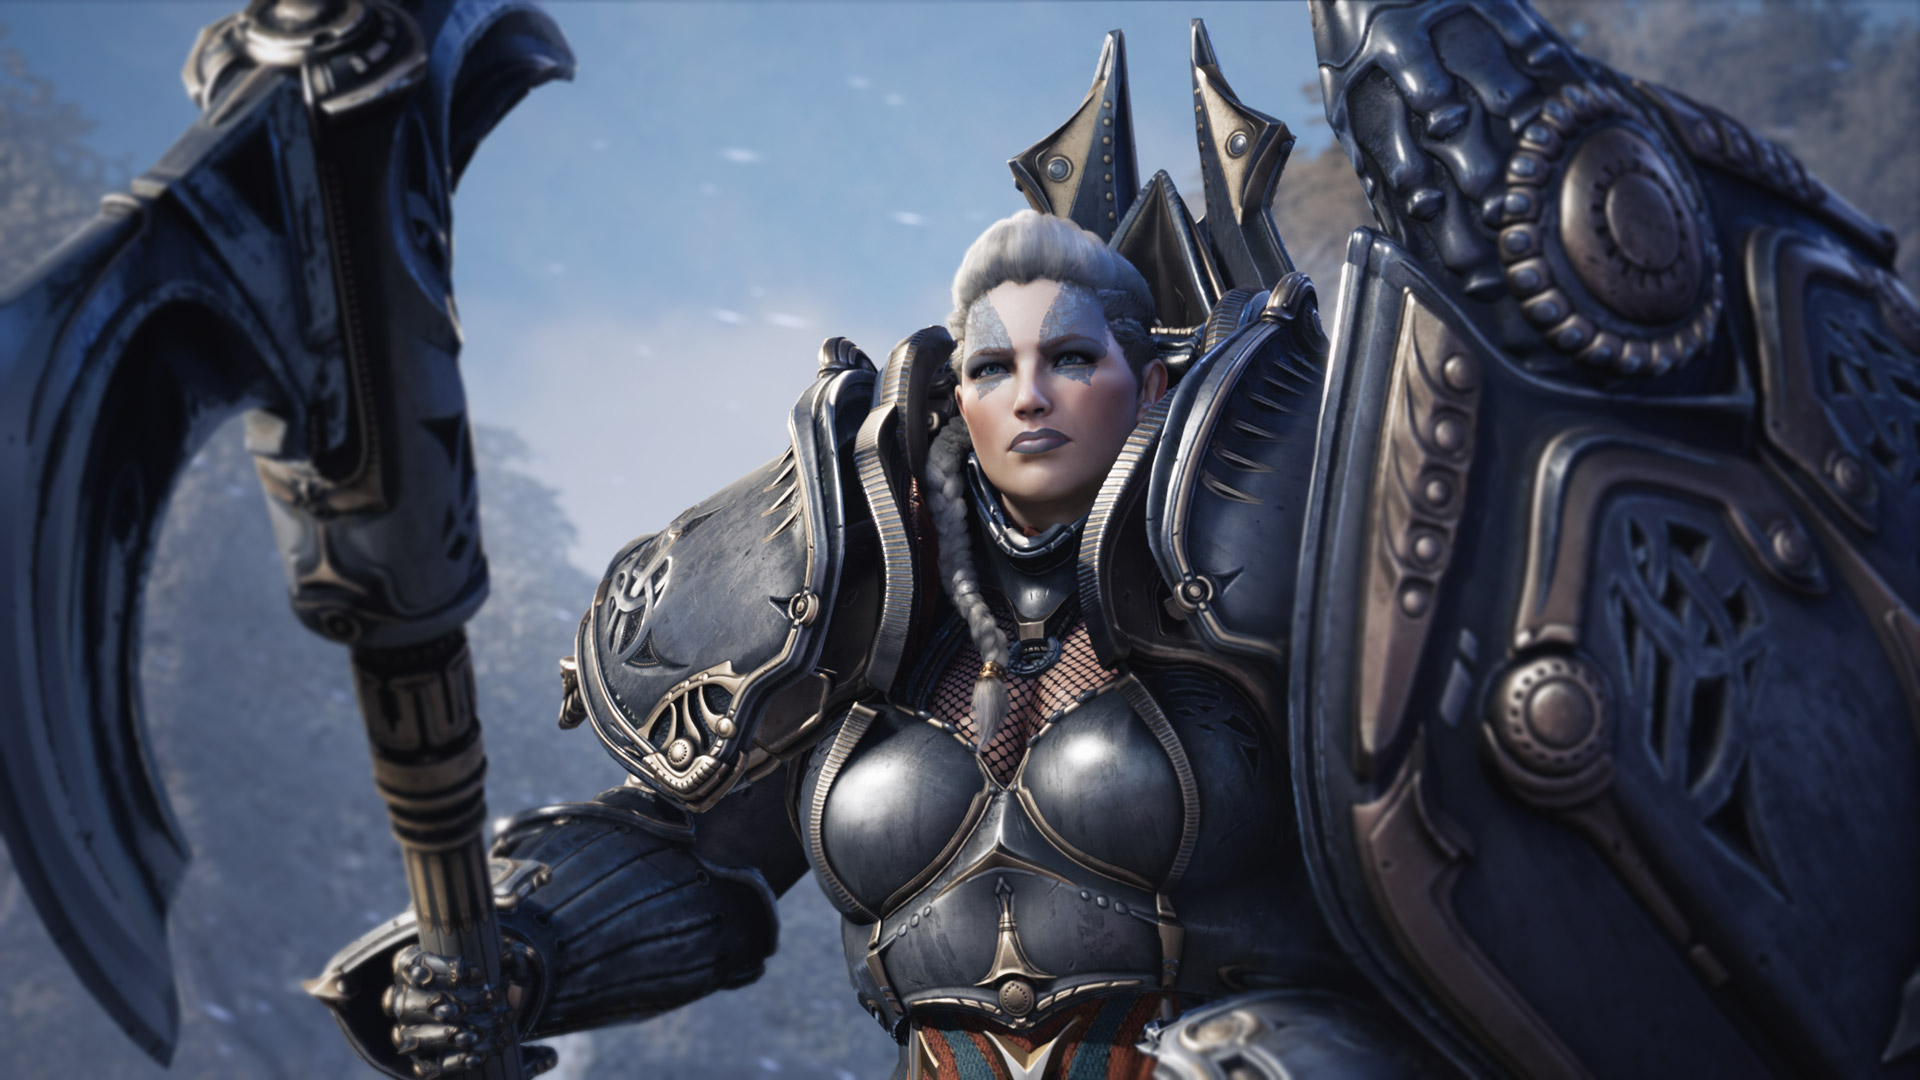 Epic Games | Free Paragon Assets Valued at Over $5 Million - article